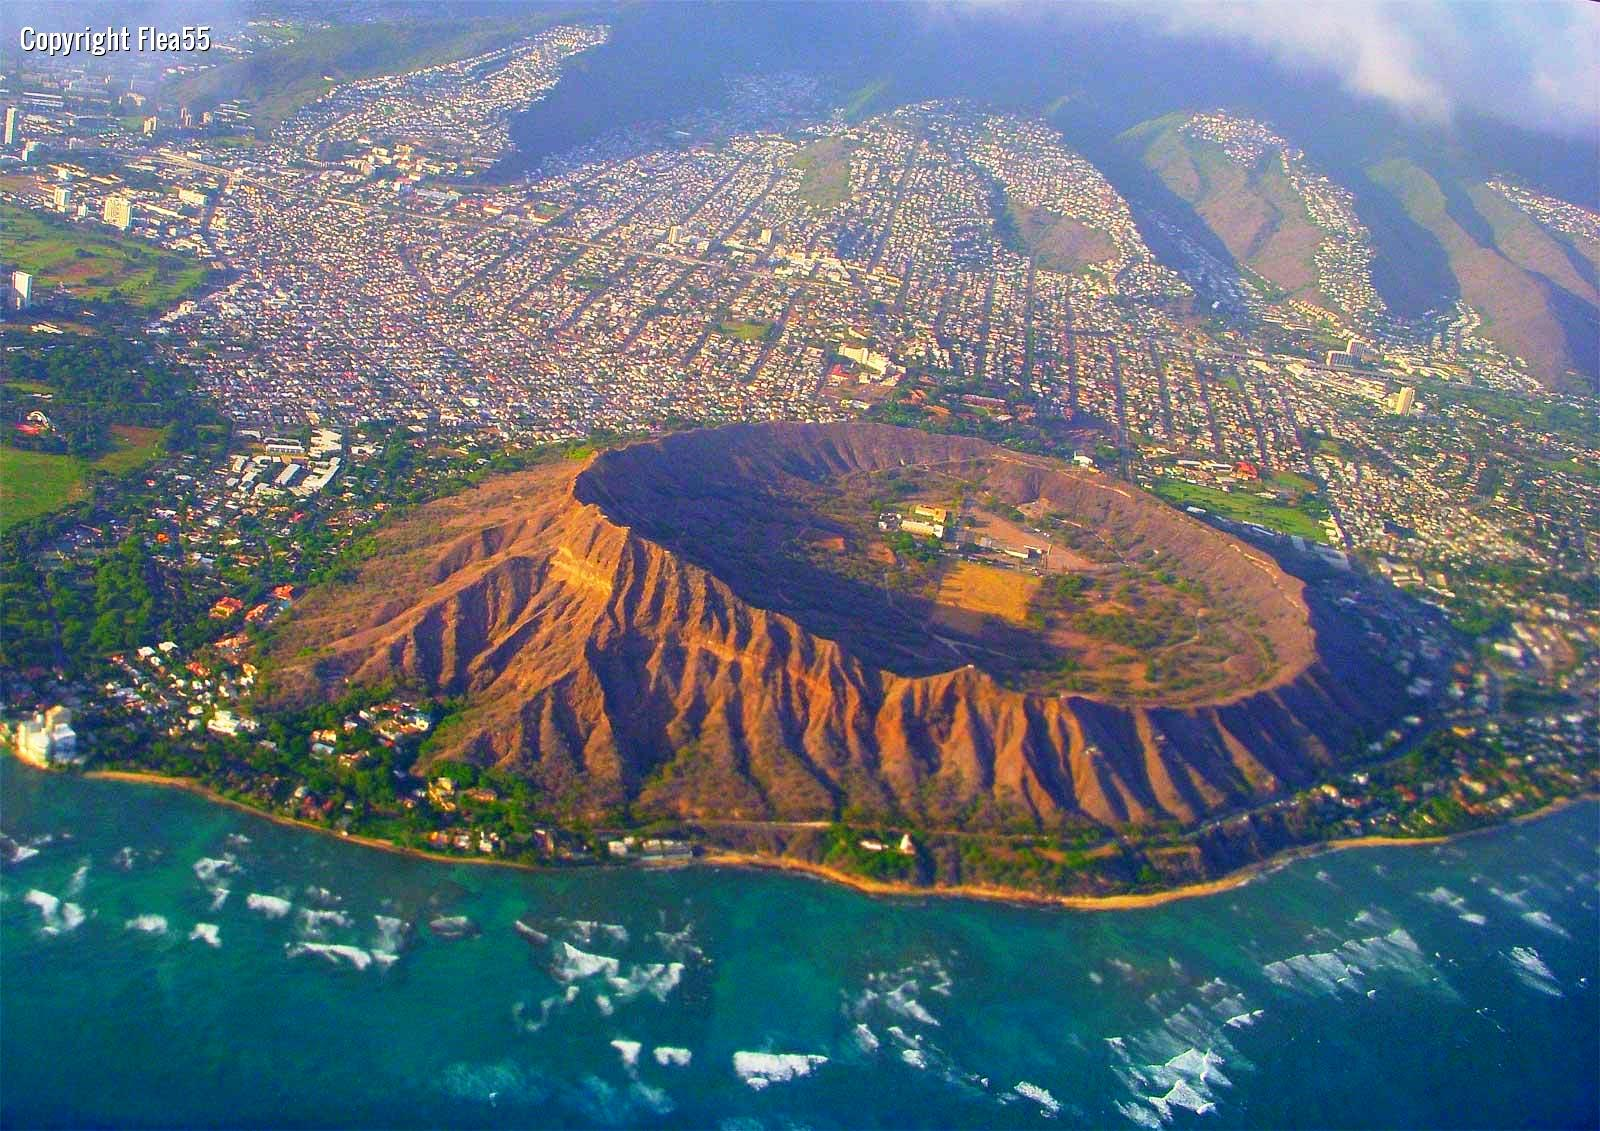 Diamond+Head+Crater,+Hawaii+04.jpg